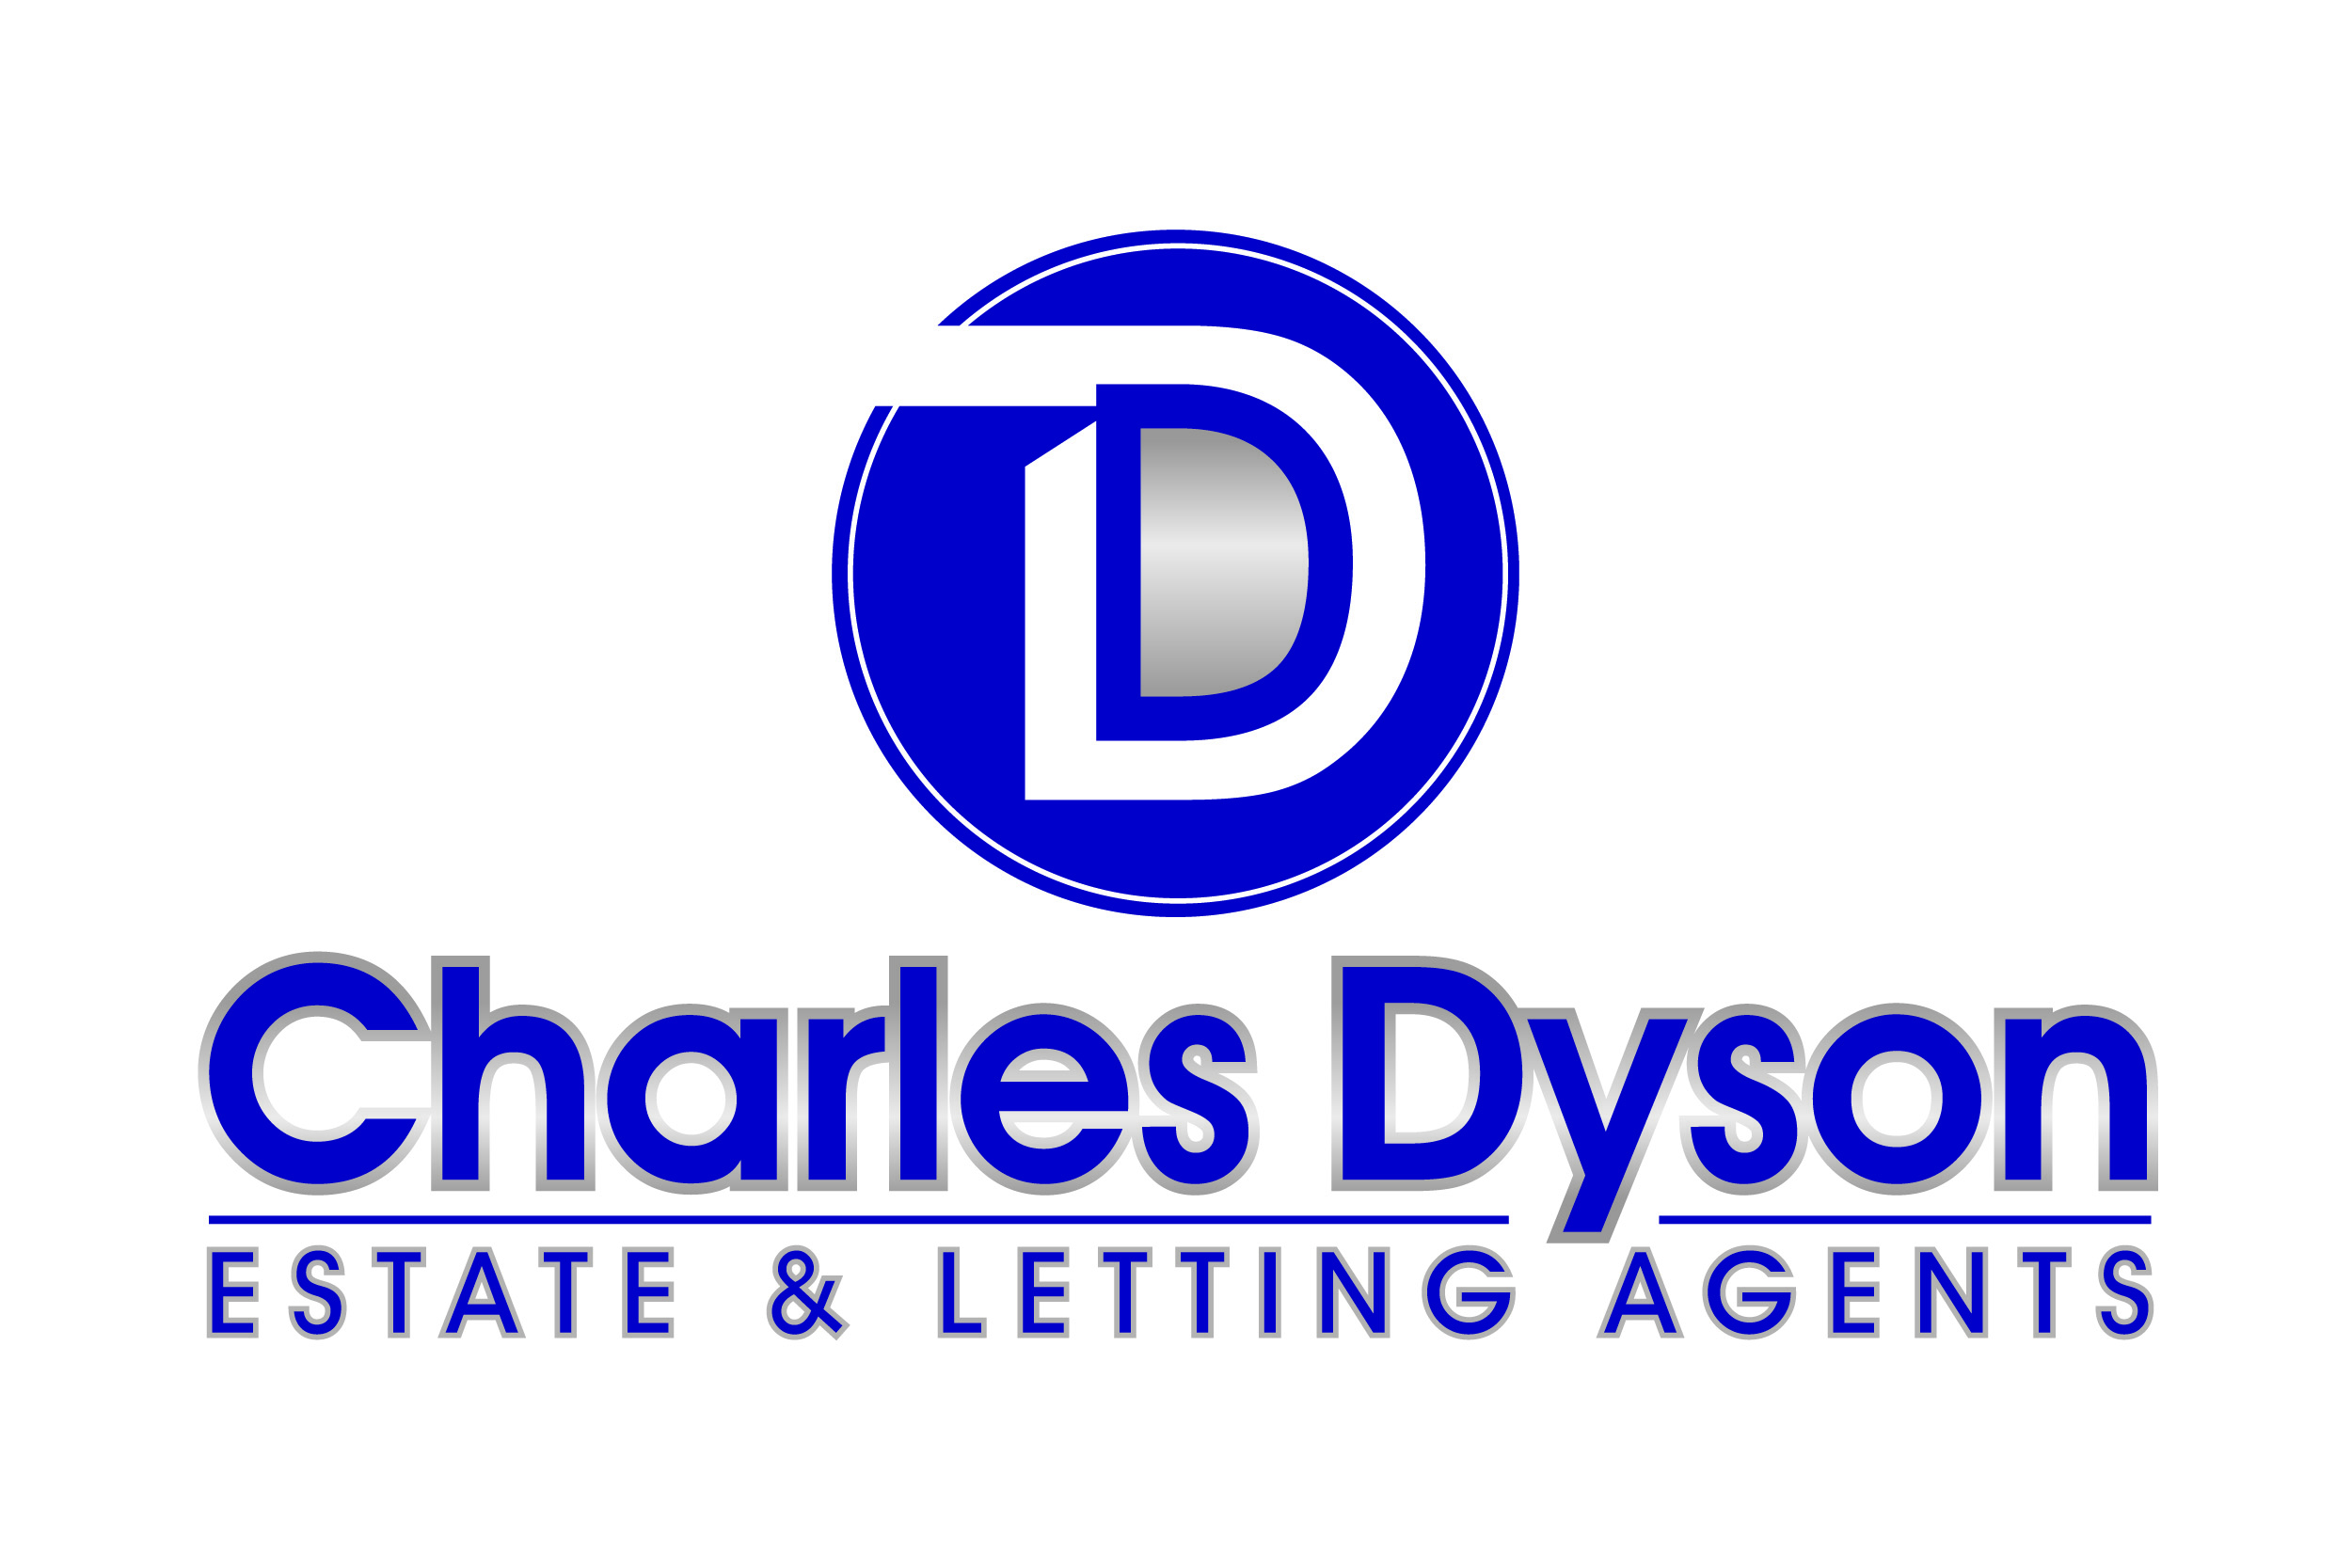 Charles Dyson Estate & Letting Agents